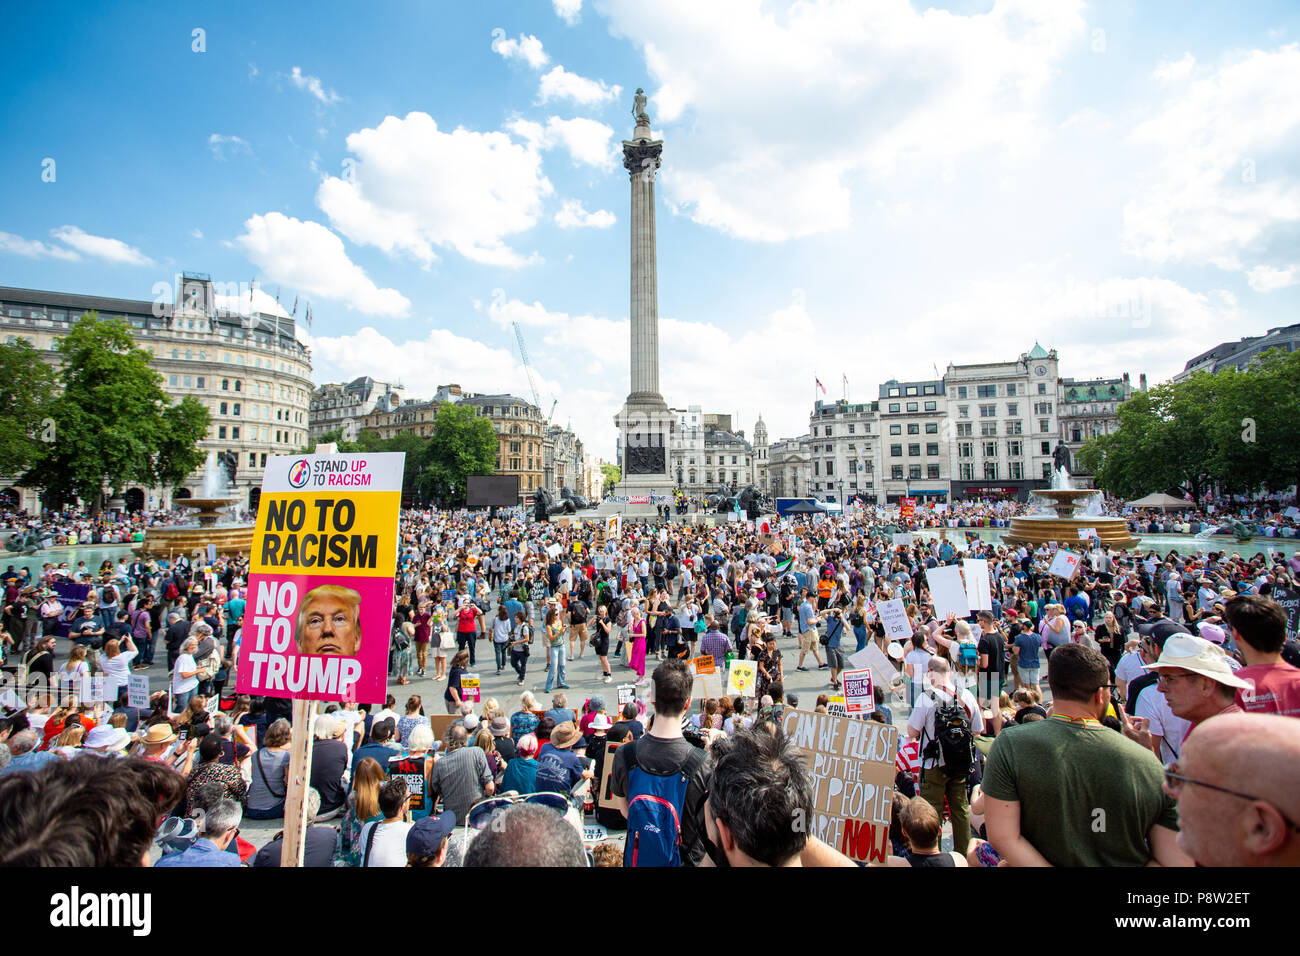 London/United Kingdom - July 13, 2018: Protests against Donald Trump continue with a march in central London ending up in Trafalgar Square for a rally. The crowds grew and grew. Credit: Martin Leitch/Alamy Live News - Stock Image